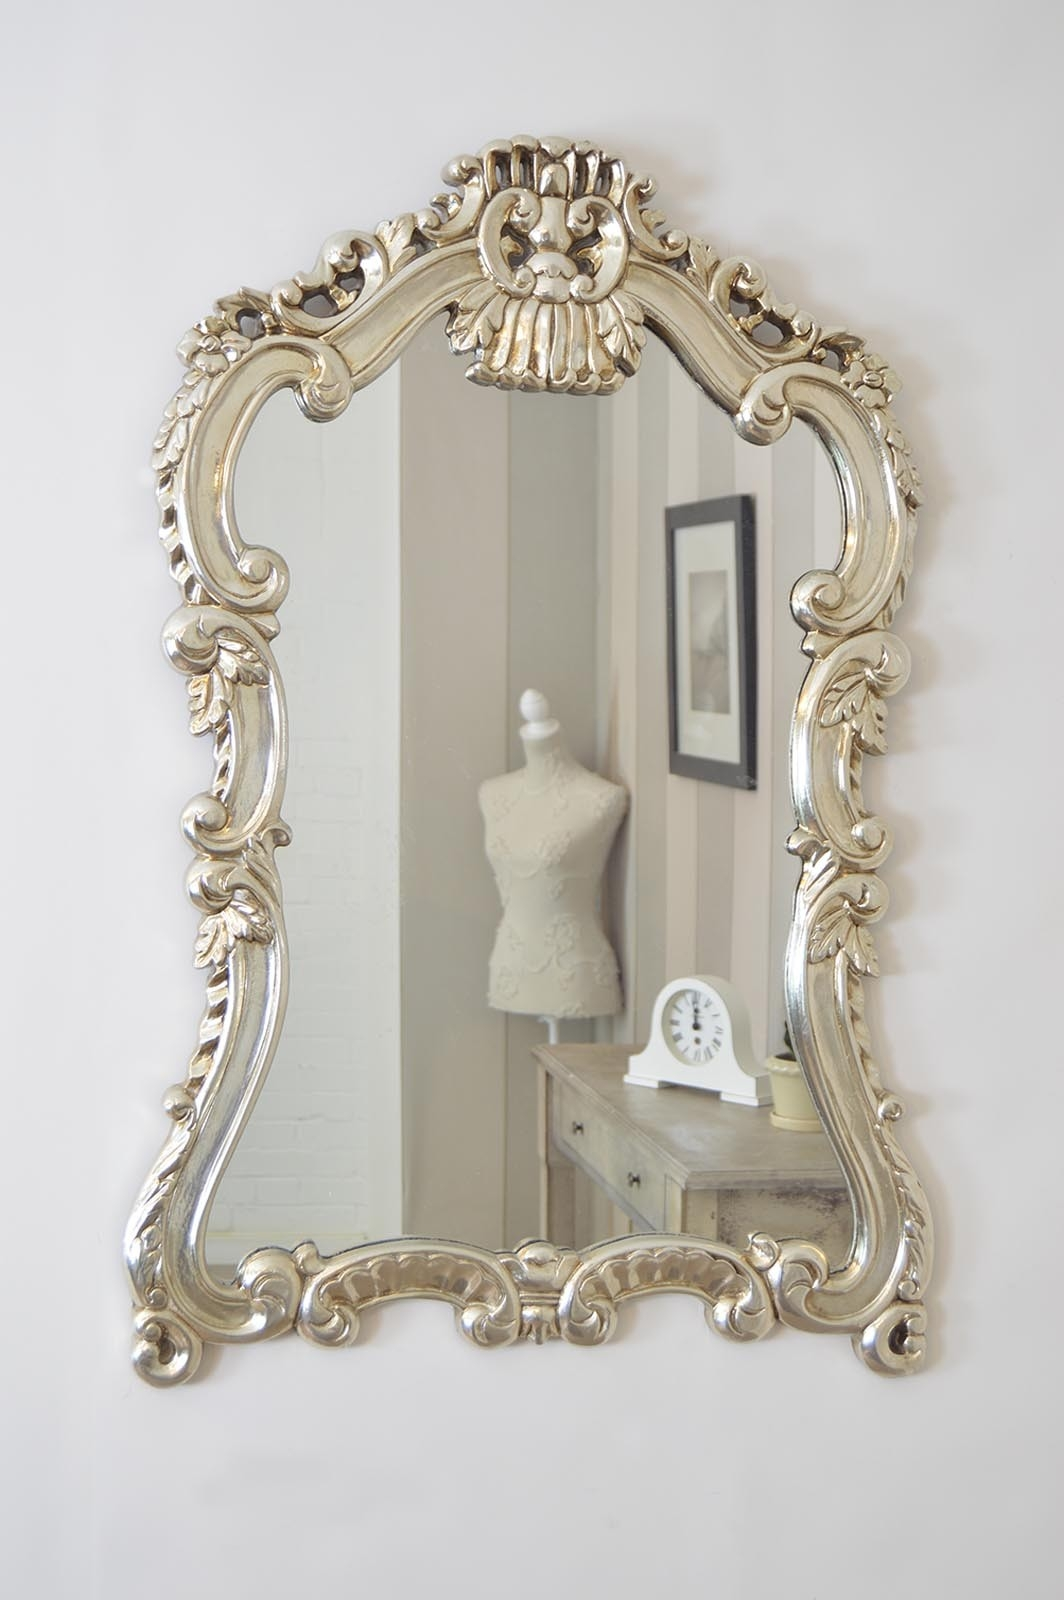 3ft6 X 2ft8 115cm X 82cm Large Silver Baroque Style Ornate Big In Ornate Silver Mirrors (Image 1 of 15)